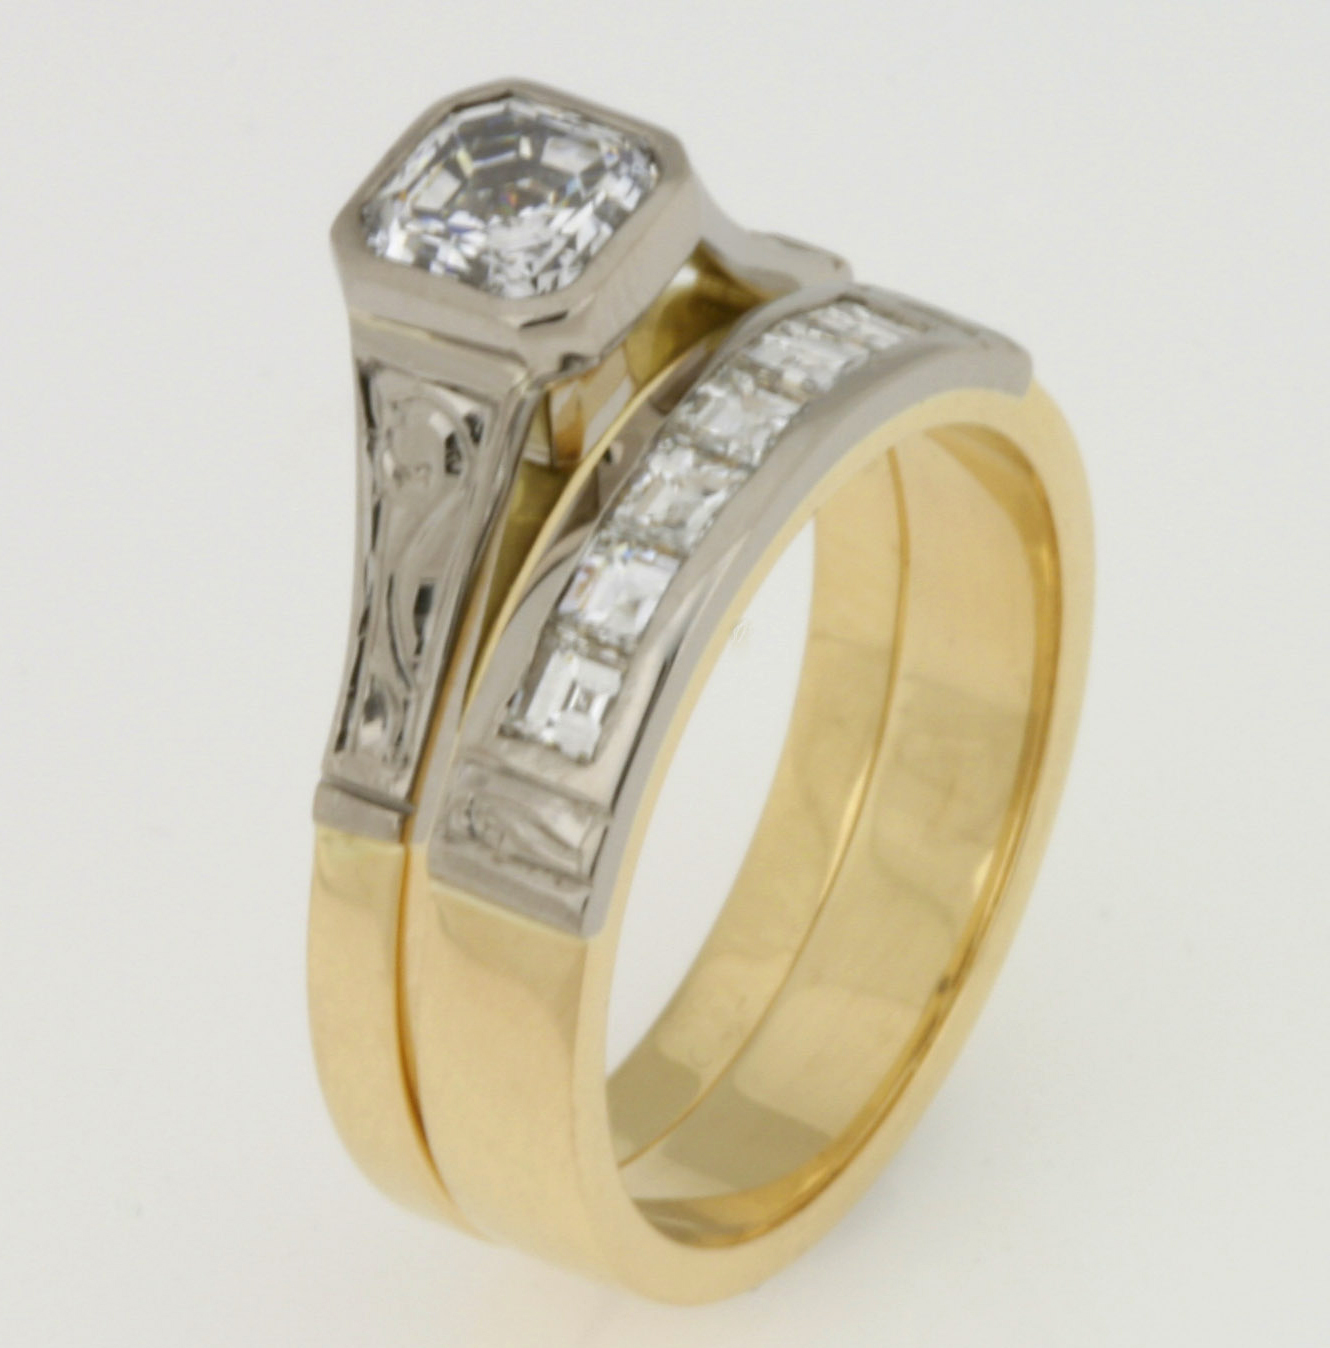 Handmade ladies 18ct yellow and white gold diamond Wedding ring set